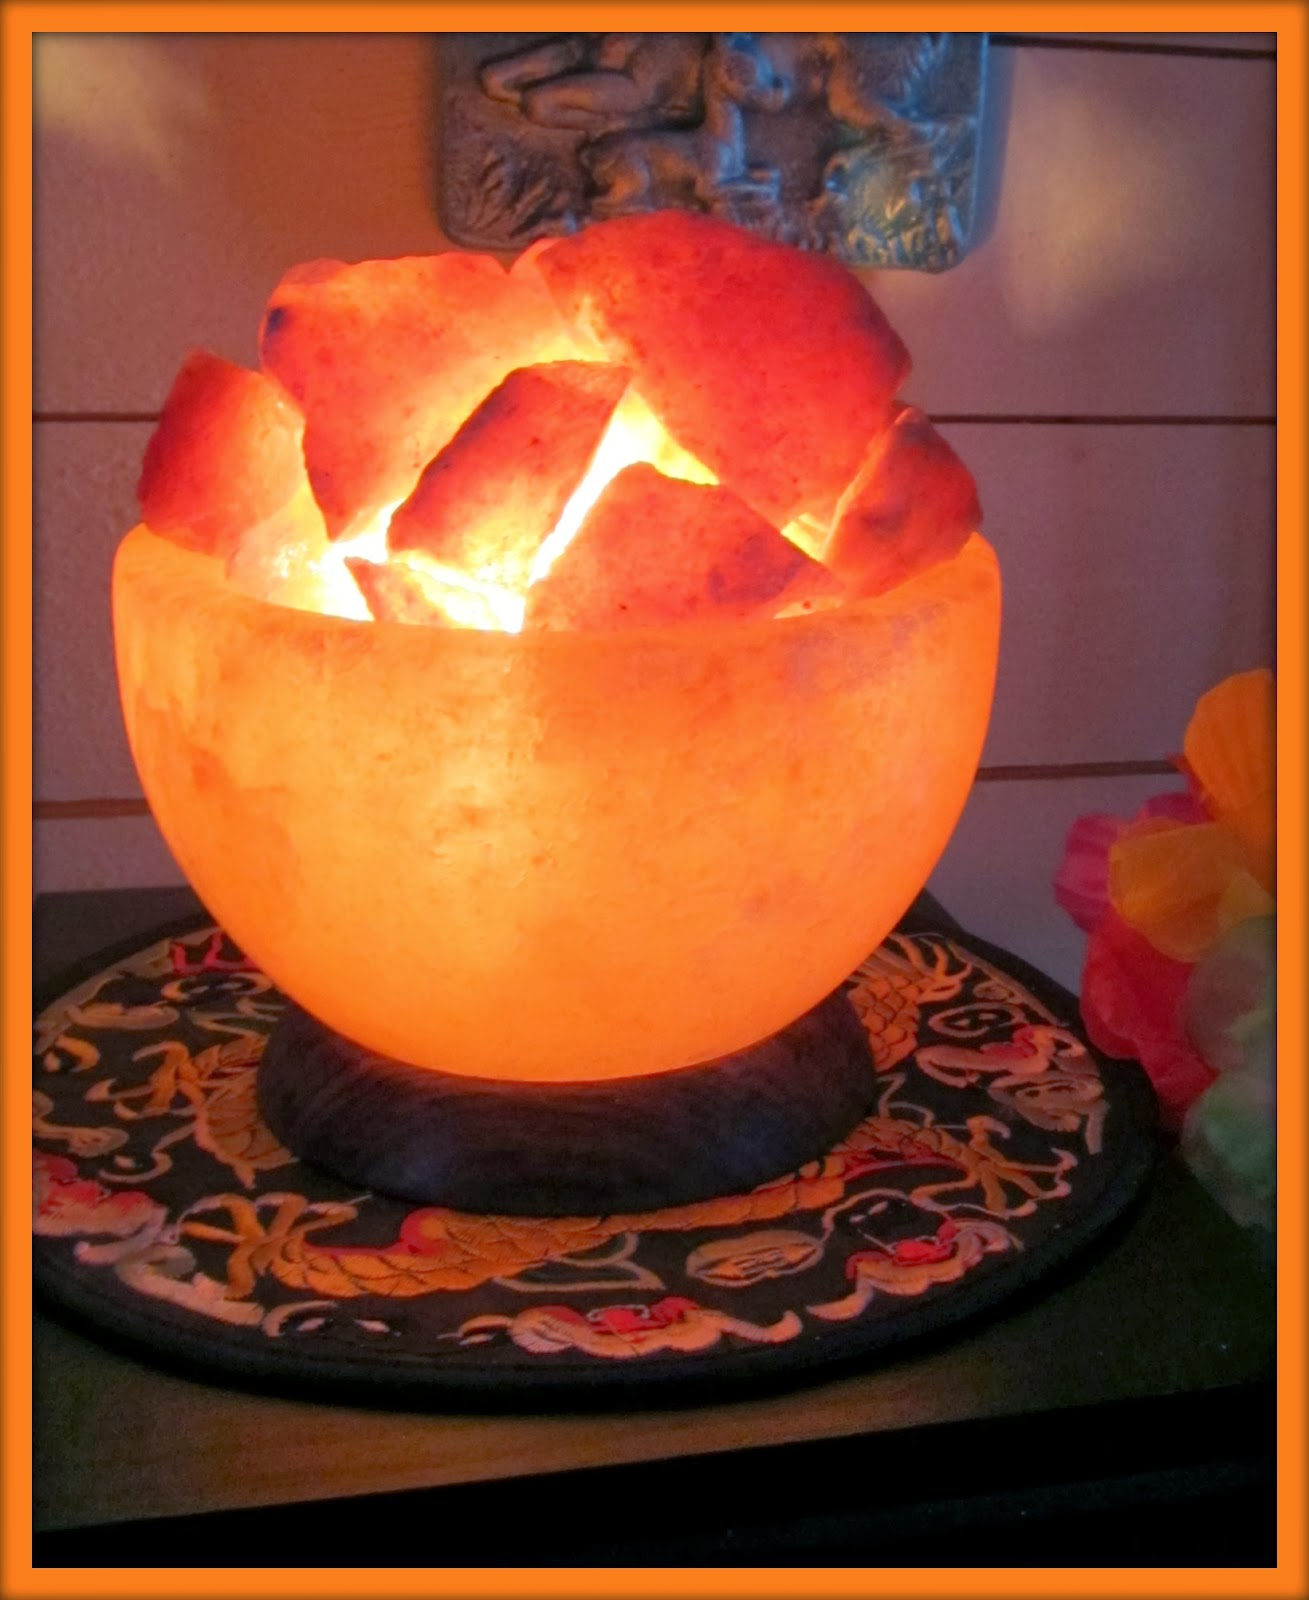 Whimsical JeMa: Saltlampa/Salt Lamp